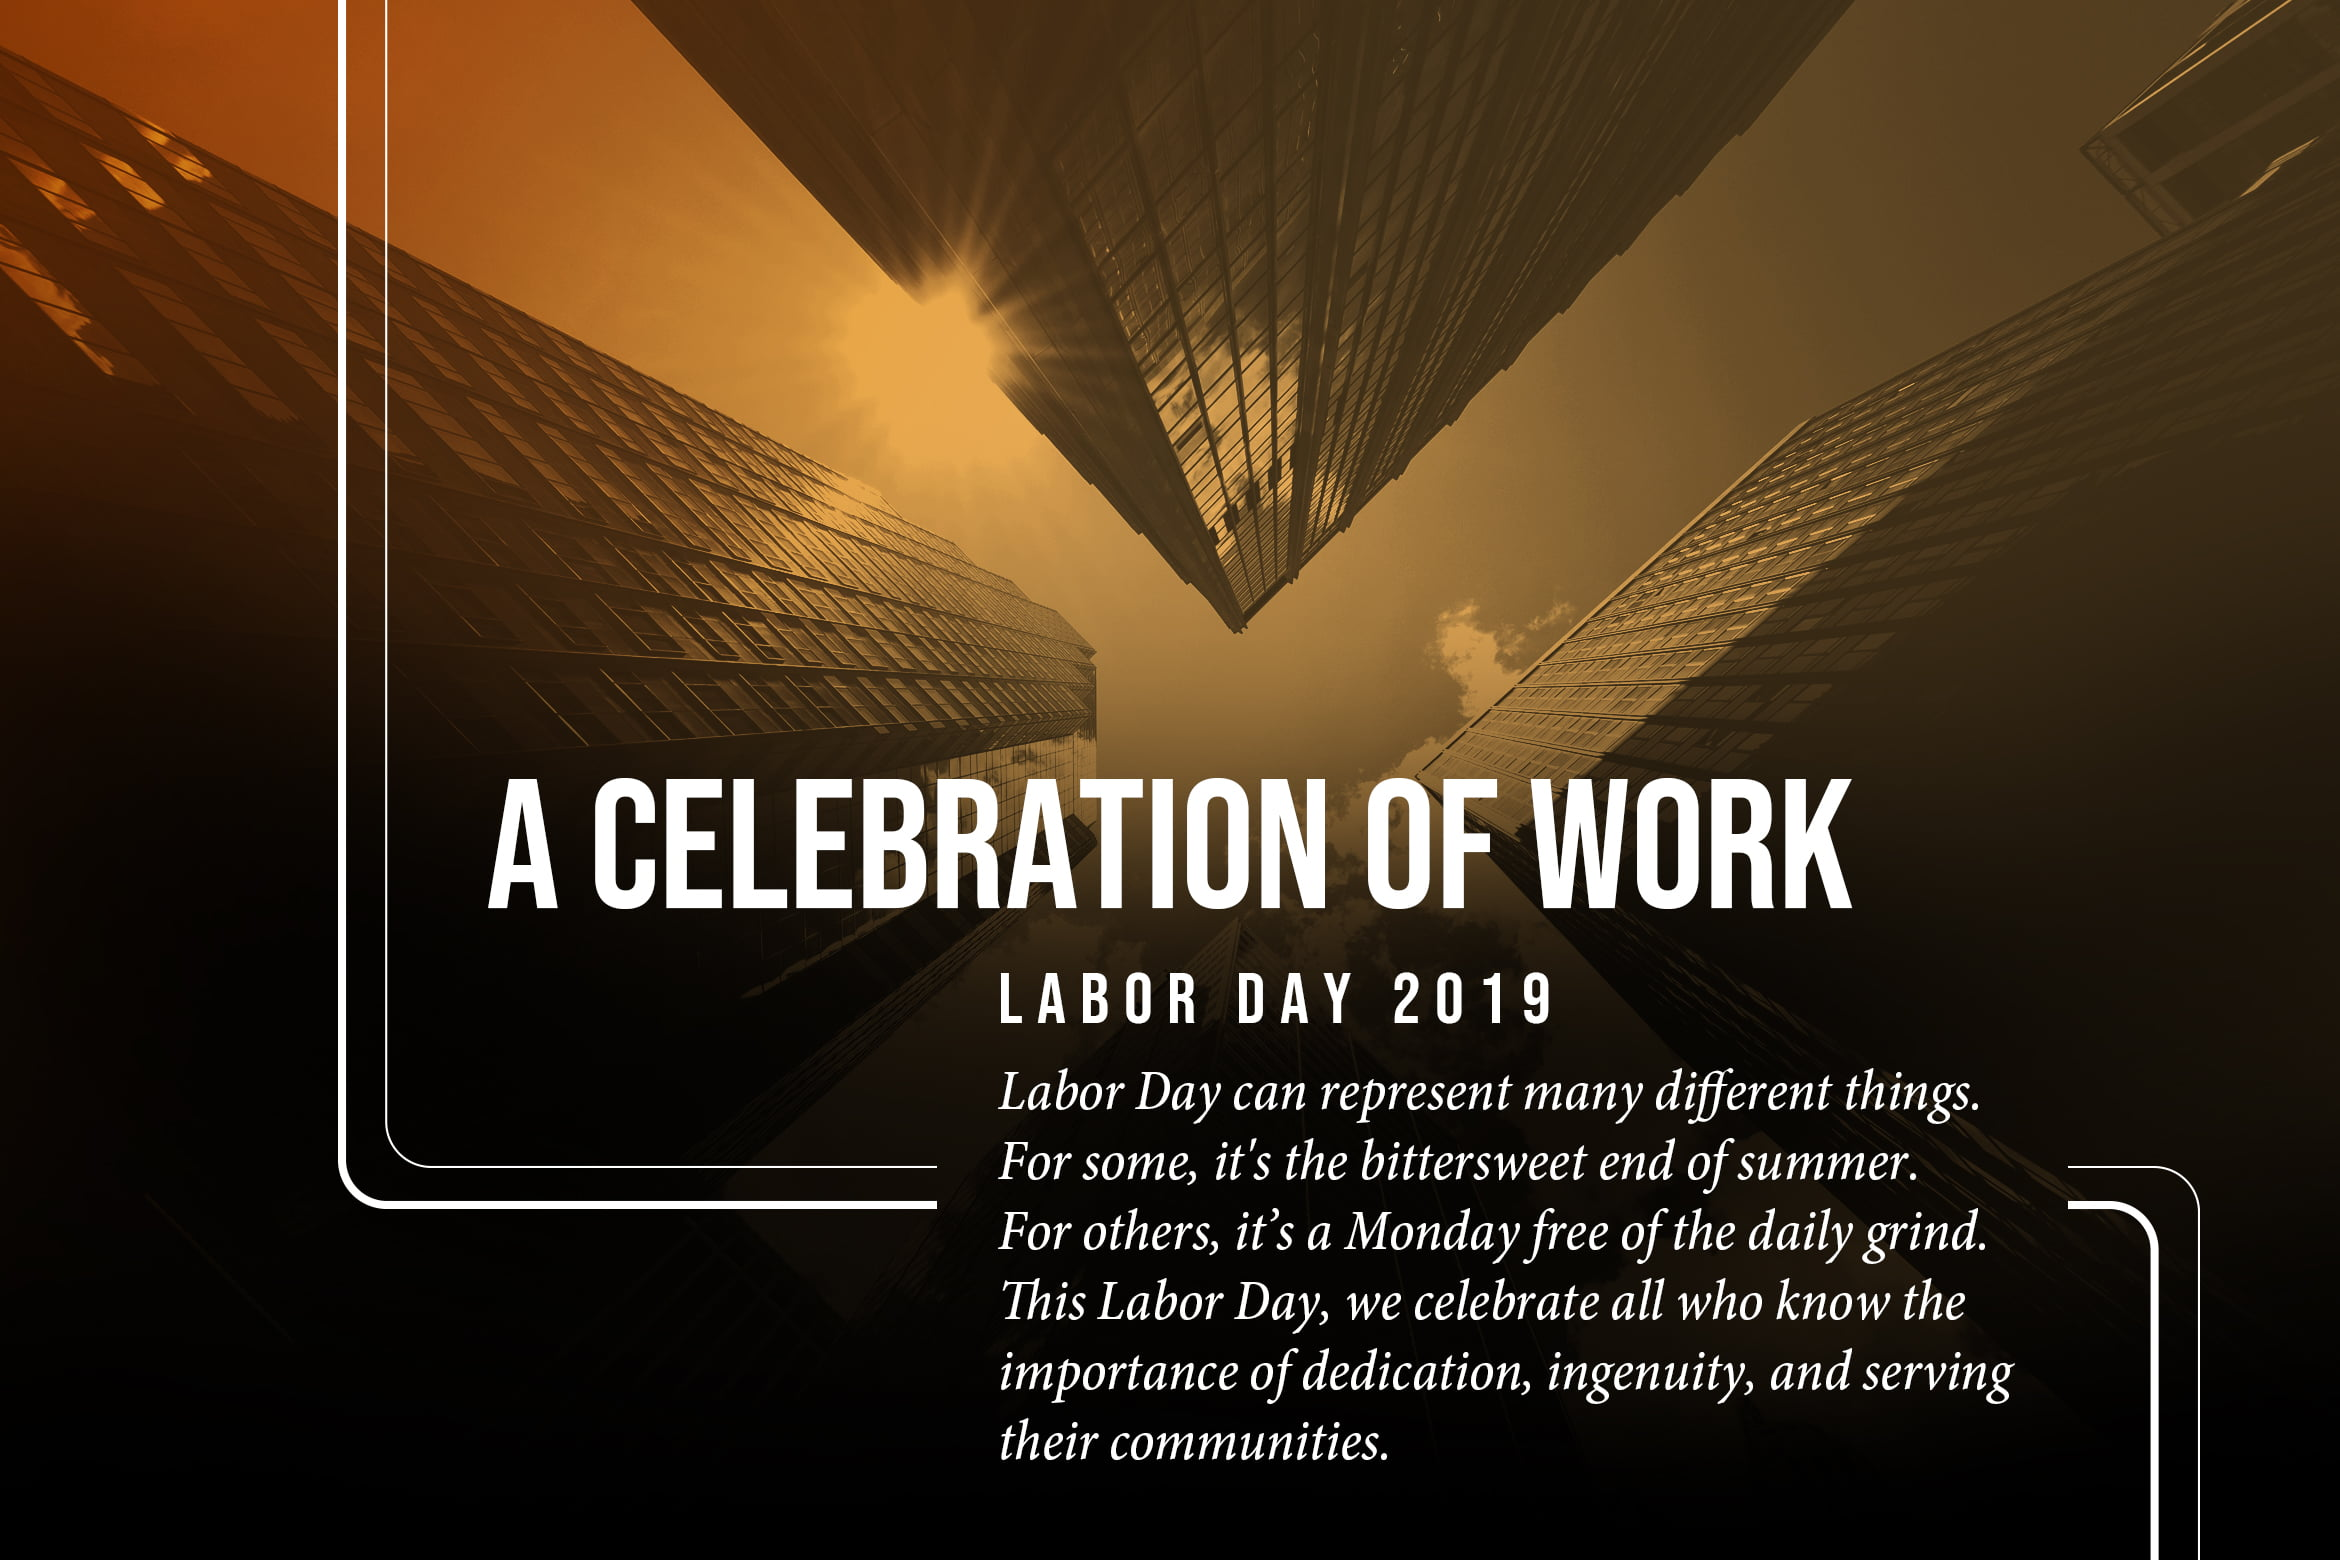 A celebration of Work. Labor Day 2019. Labor Day can represent many different things. For some, it's the bittersweet end of summer. For others, it's a Monday free of the daily grind. This Labor Day, we celebrate all who know the importance of dedication, ingenuity, and serving our communities.